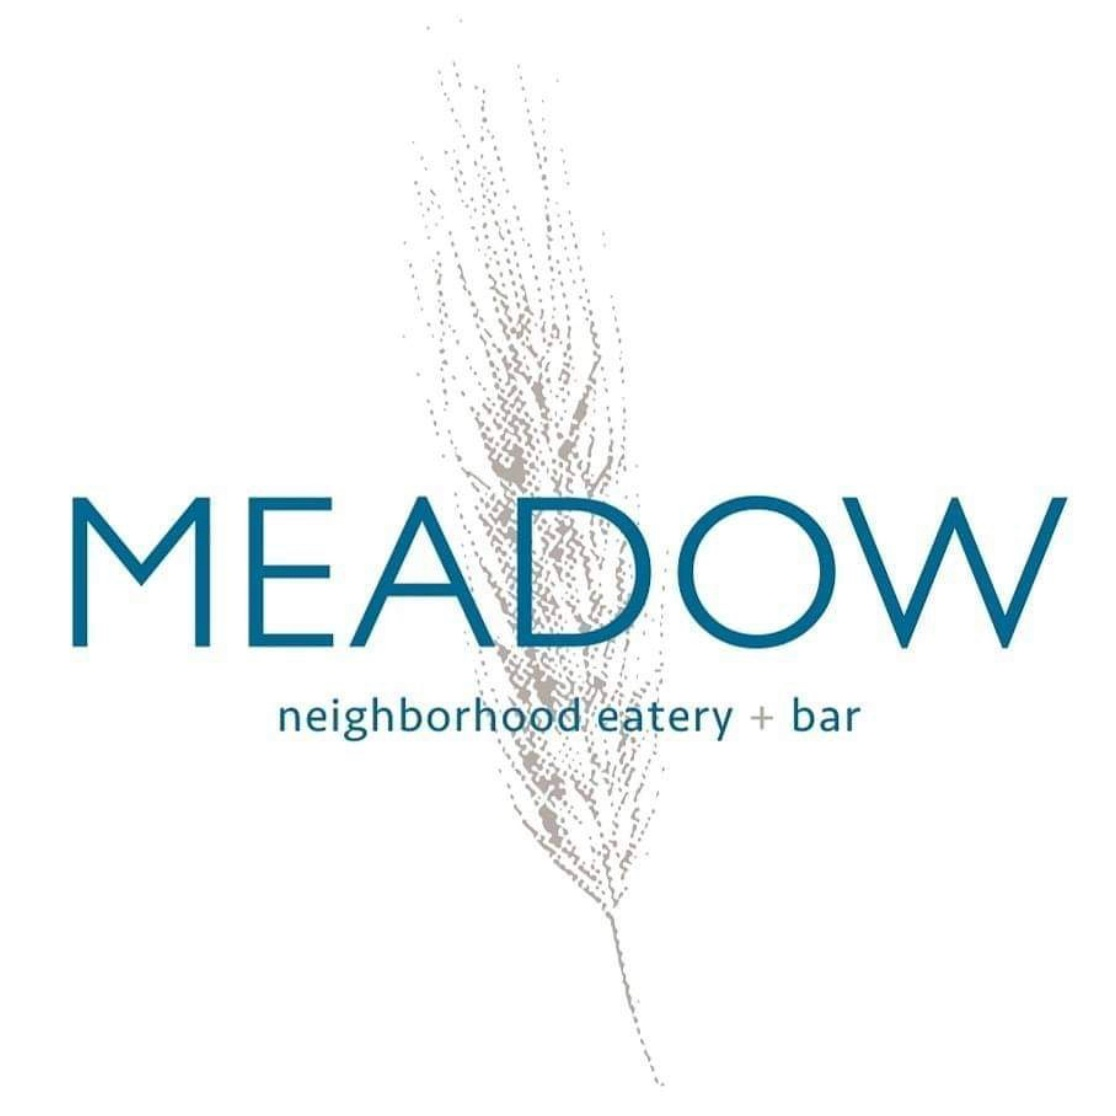 Meadow    Address   :  555 W Bitters Rd #110, San Antonio, TX 78216   Phone   :  (210) 481-4214  Web :  https://www.meadowsanantonio.com/